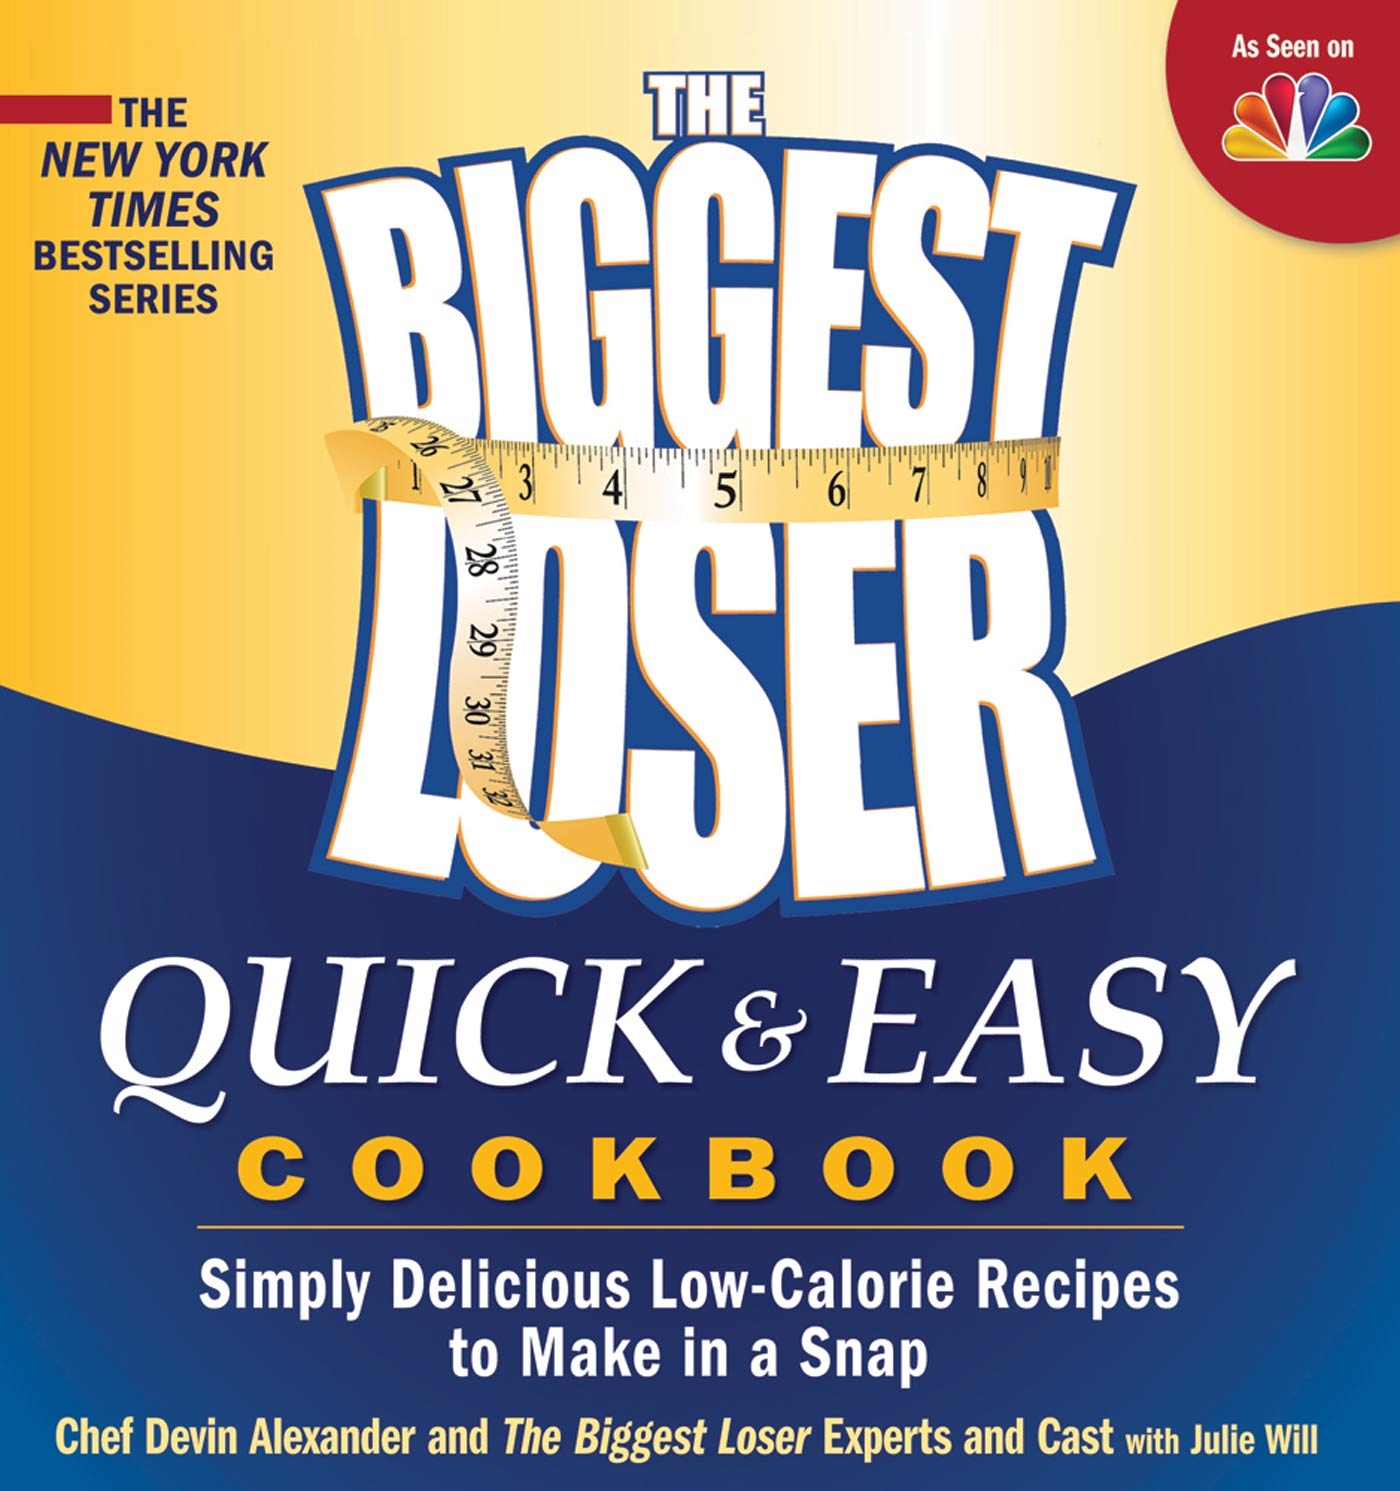 The Biggest Loser Quick & Easy Cookbook : Simply Delicious Low-calorie Recipes to Make in a Snap